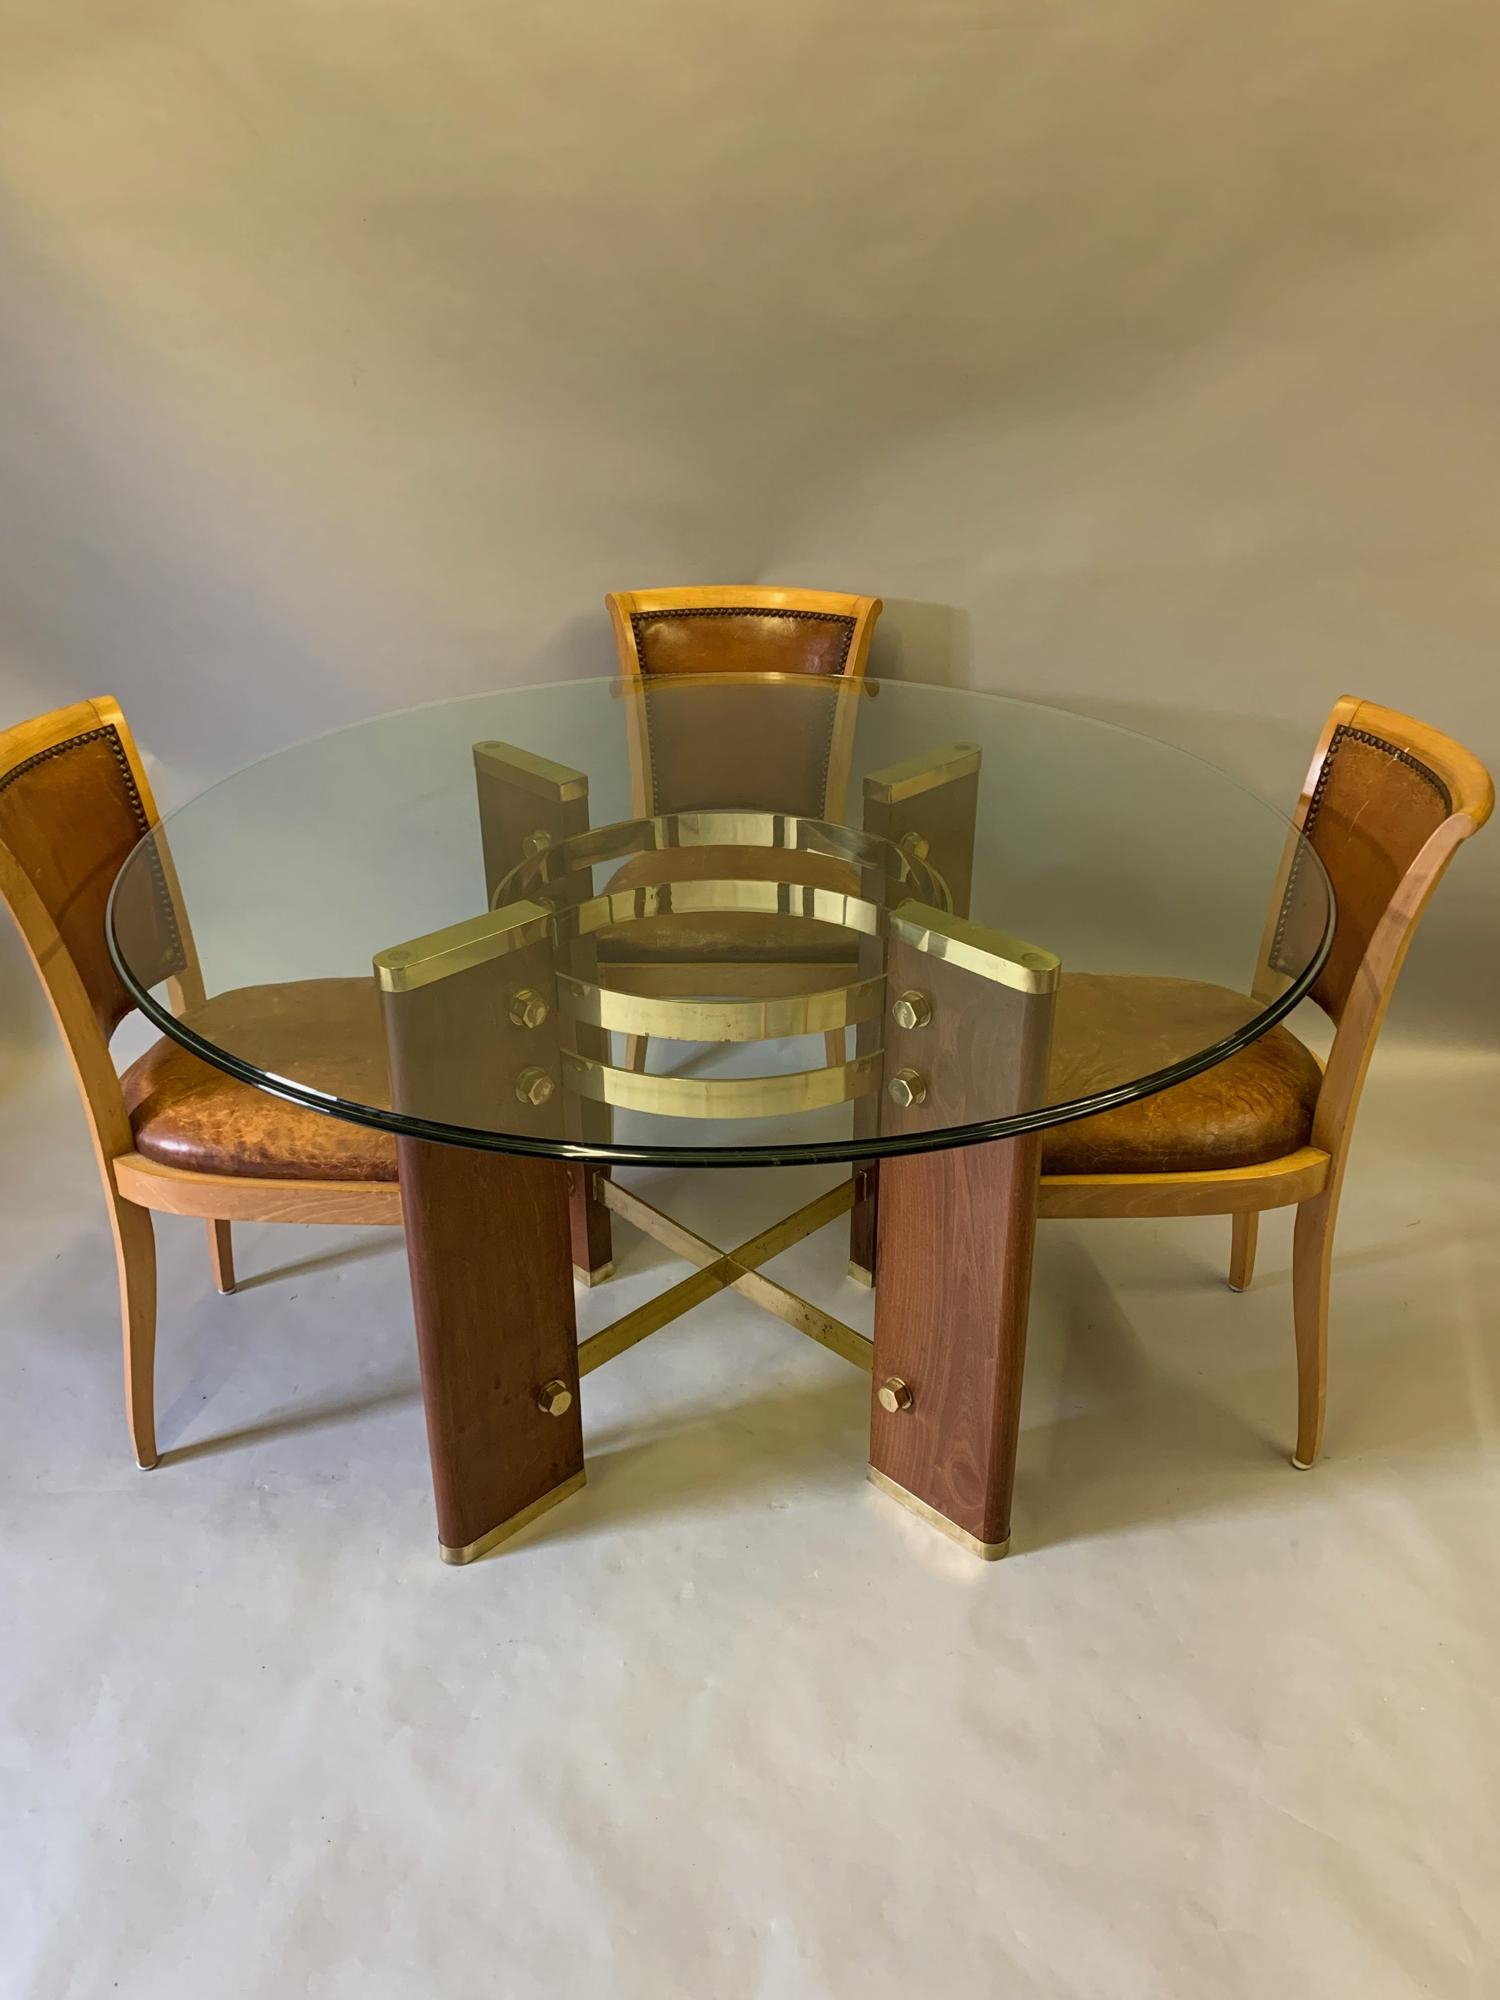 Circular dining/centre table